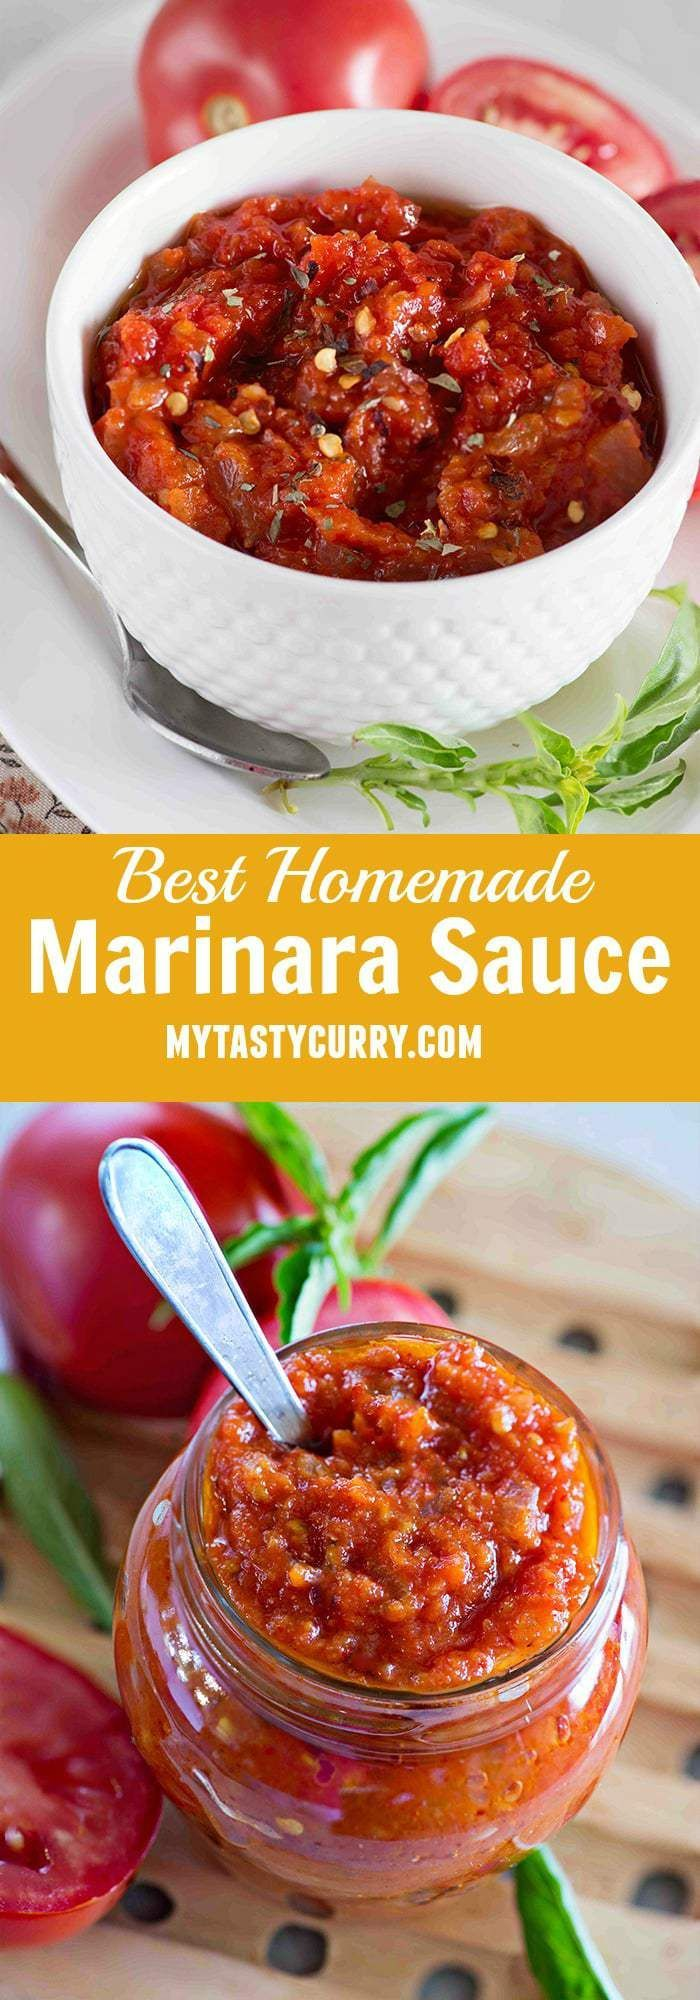 This classic homemade marinara sauce recipe is super quick, and easy to make. It takes twenty minutes to make, and can be made with easily available ingredients in your kitchen. This recipe of homemade marinara sauce is easy, delicious and best thing is you can put together it in just about 20 minutes.